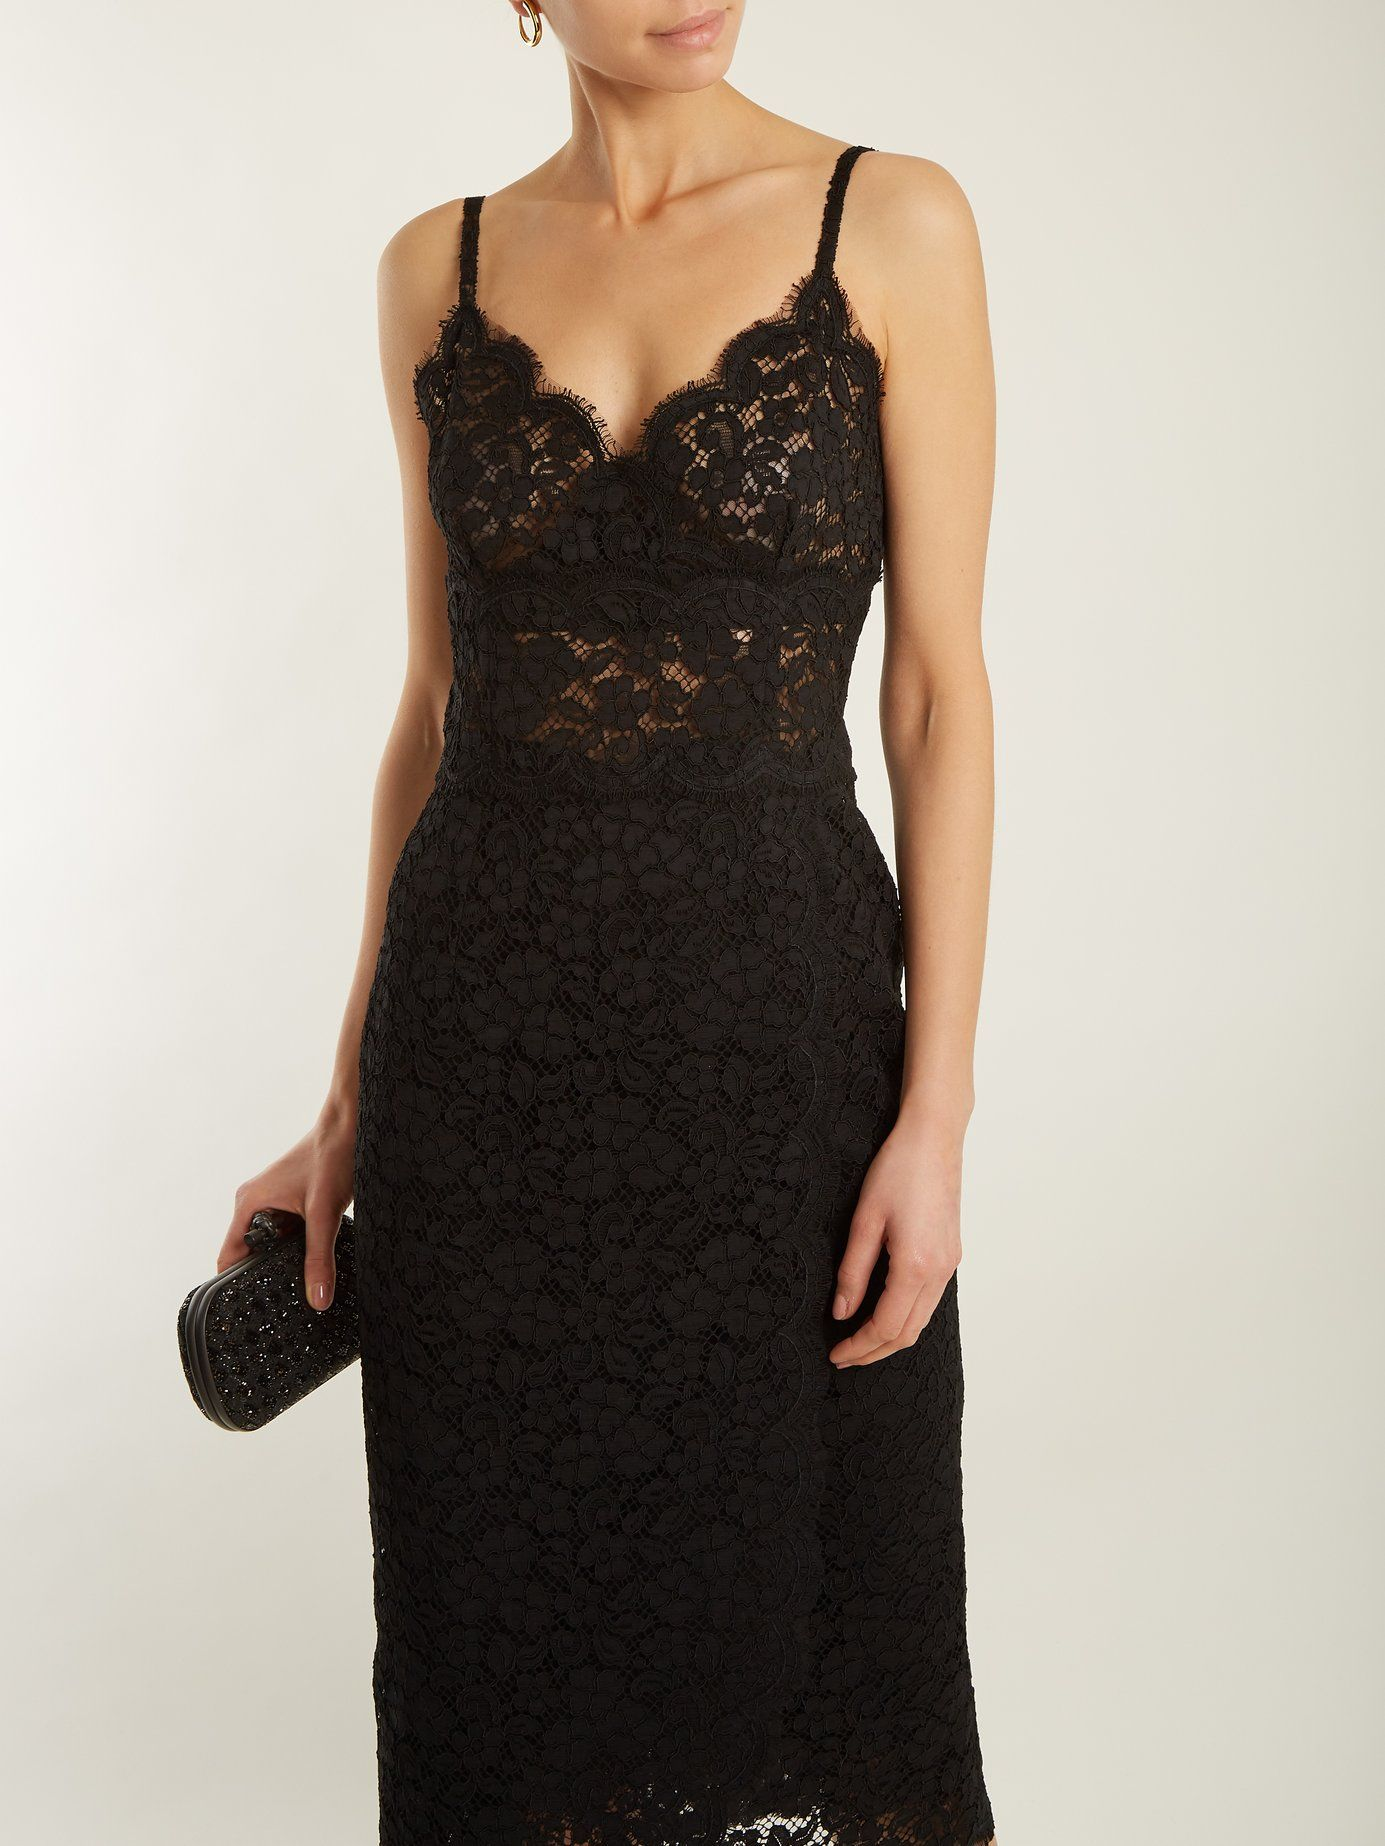 With Paypal For Sale Free Shipping For Cheap Cordonetto-lace scallop-edged dress Dolce & Gabbana 8mB6YHT5